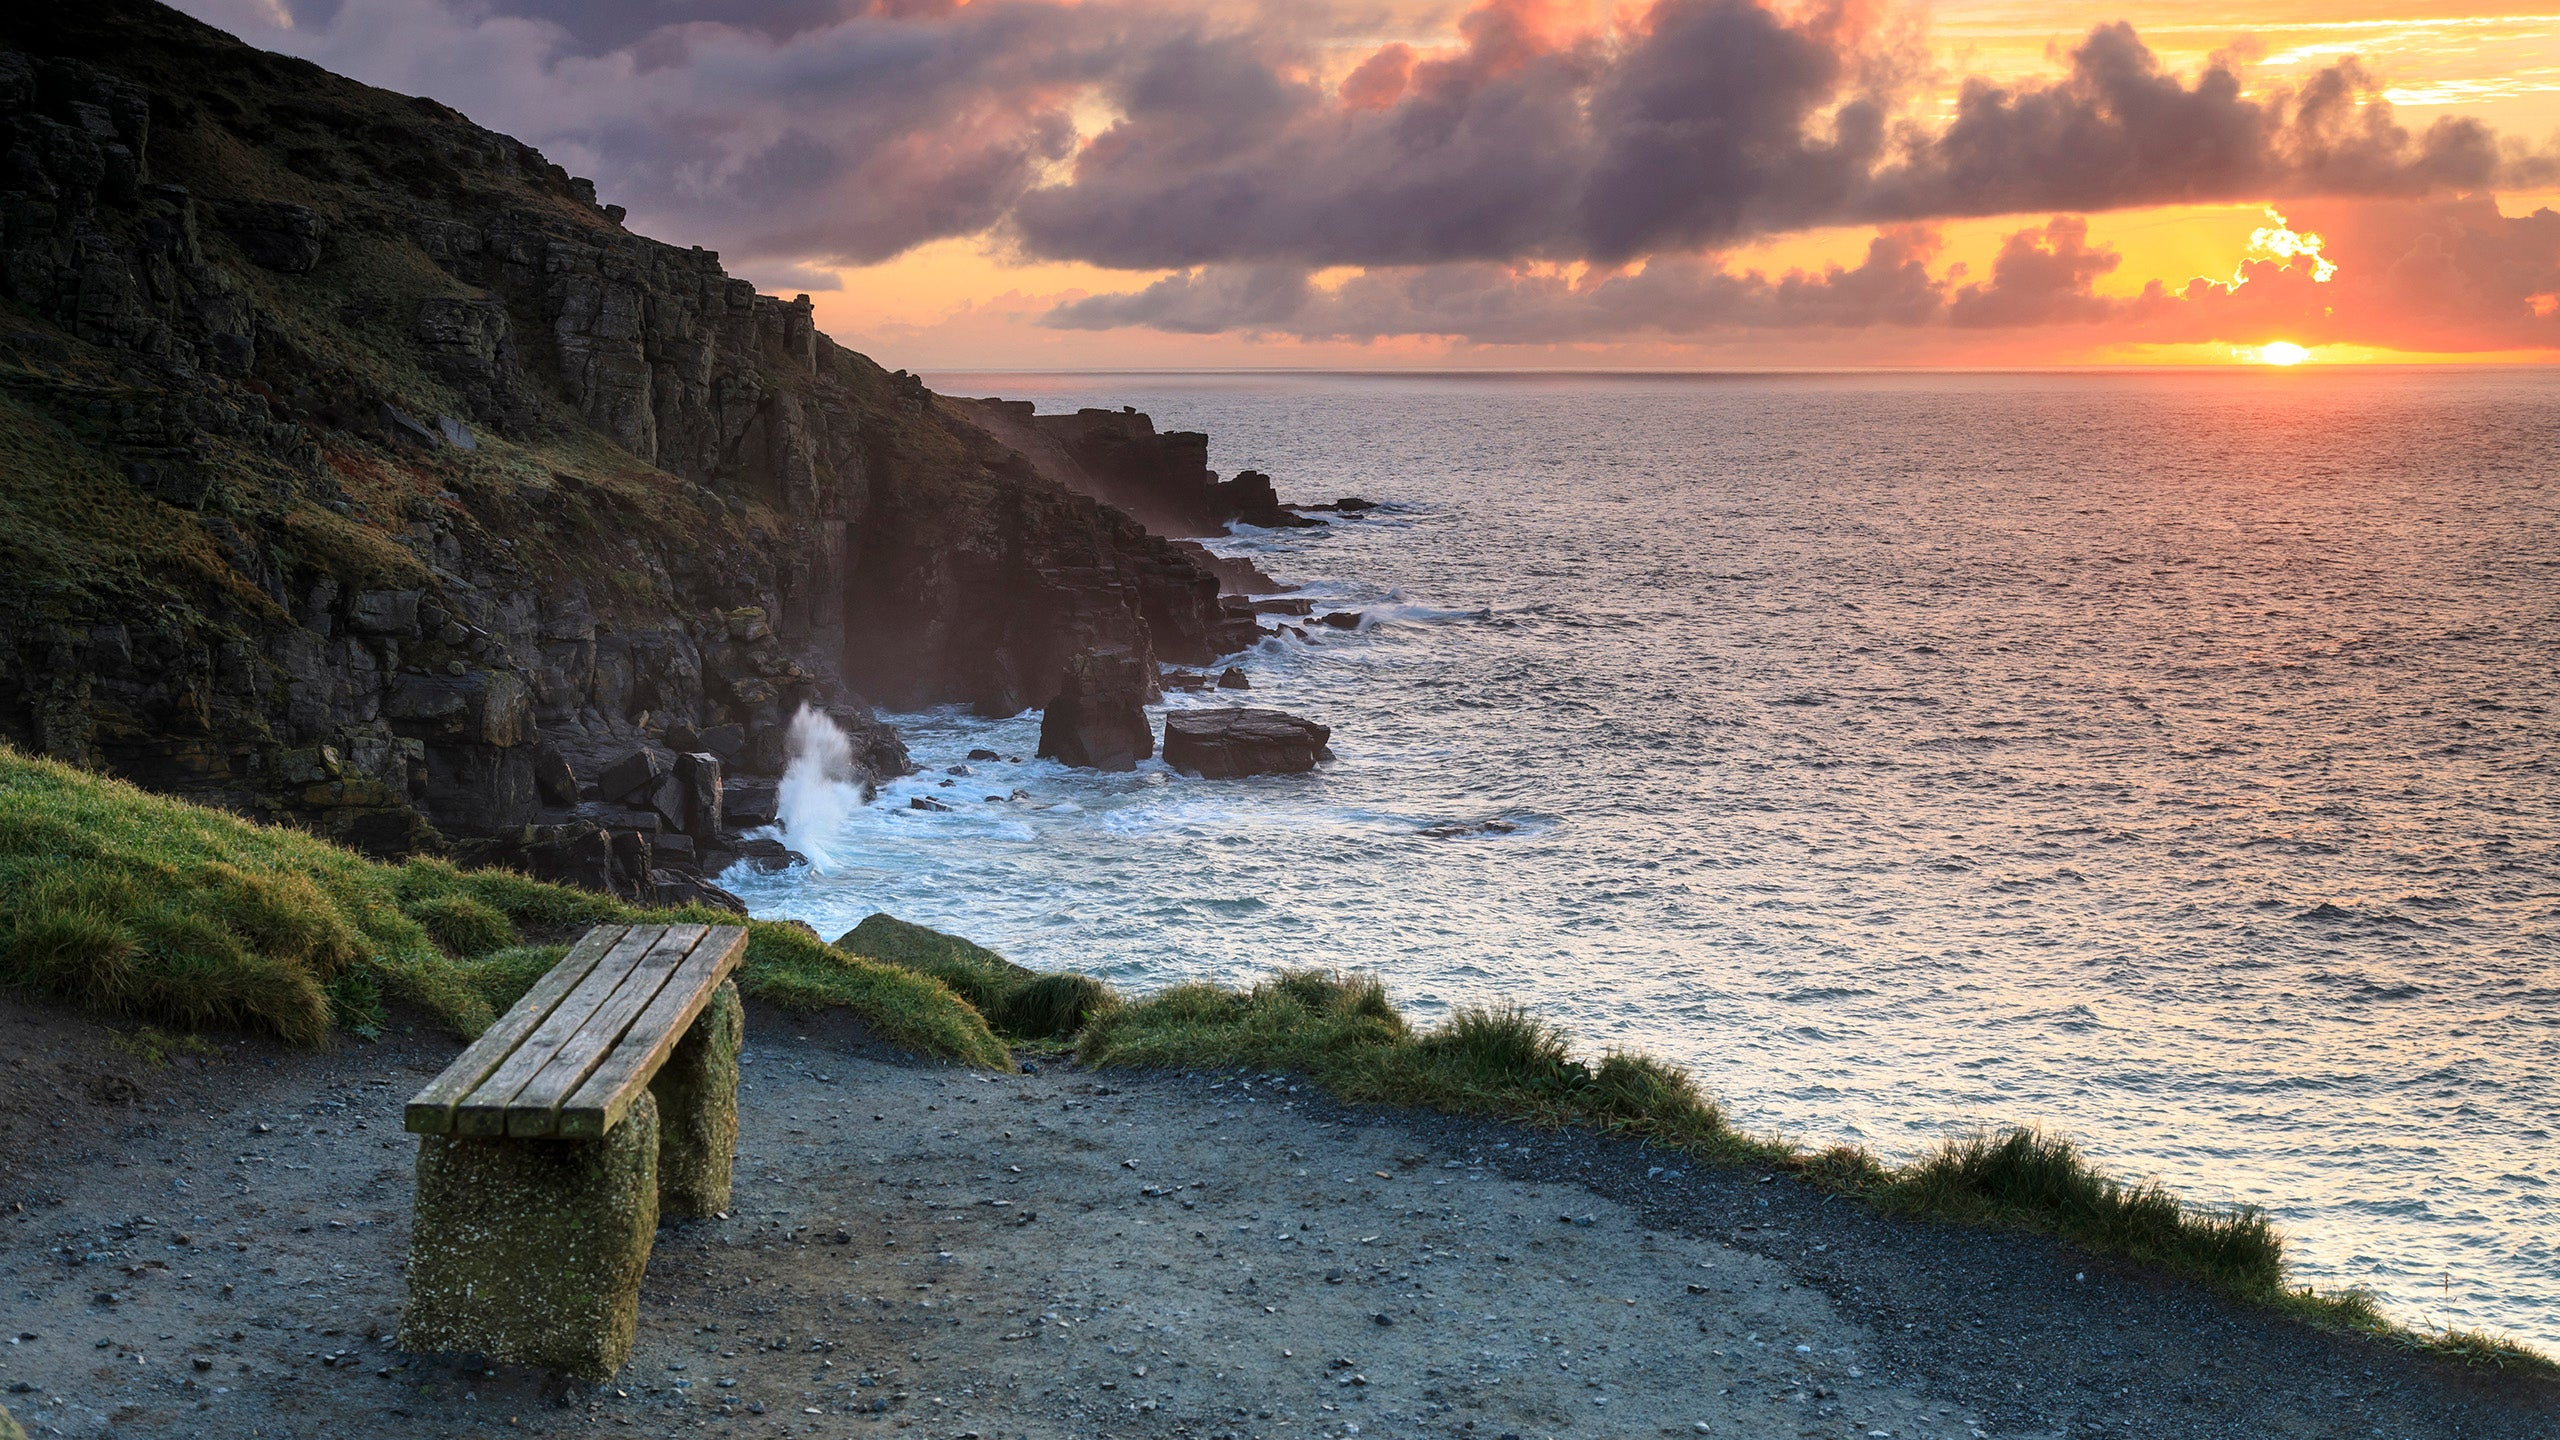 Sunset over Lizard Point, Cornwall